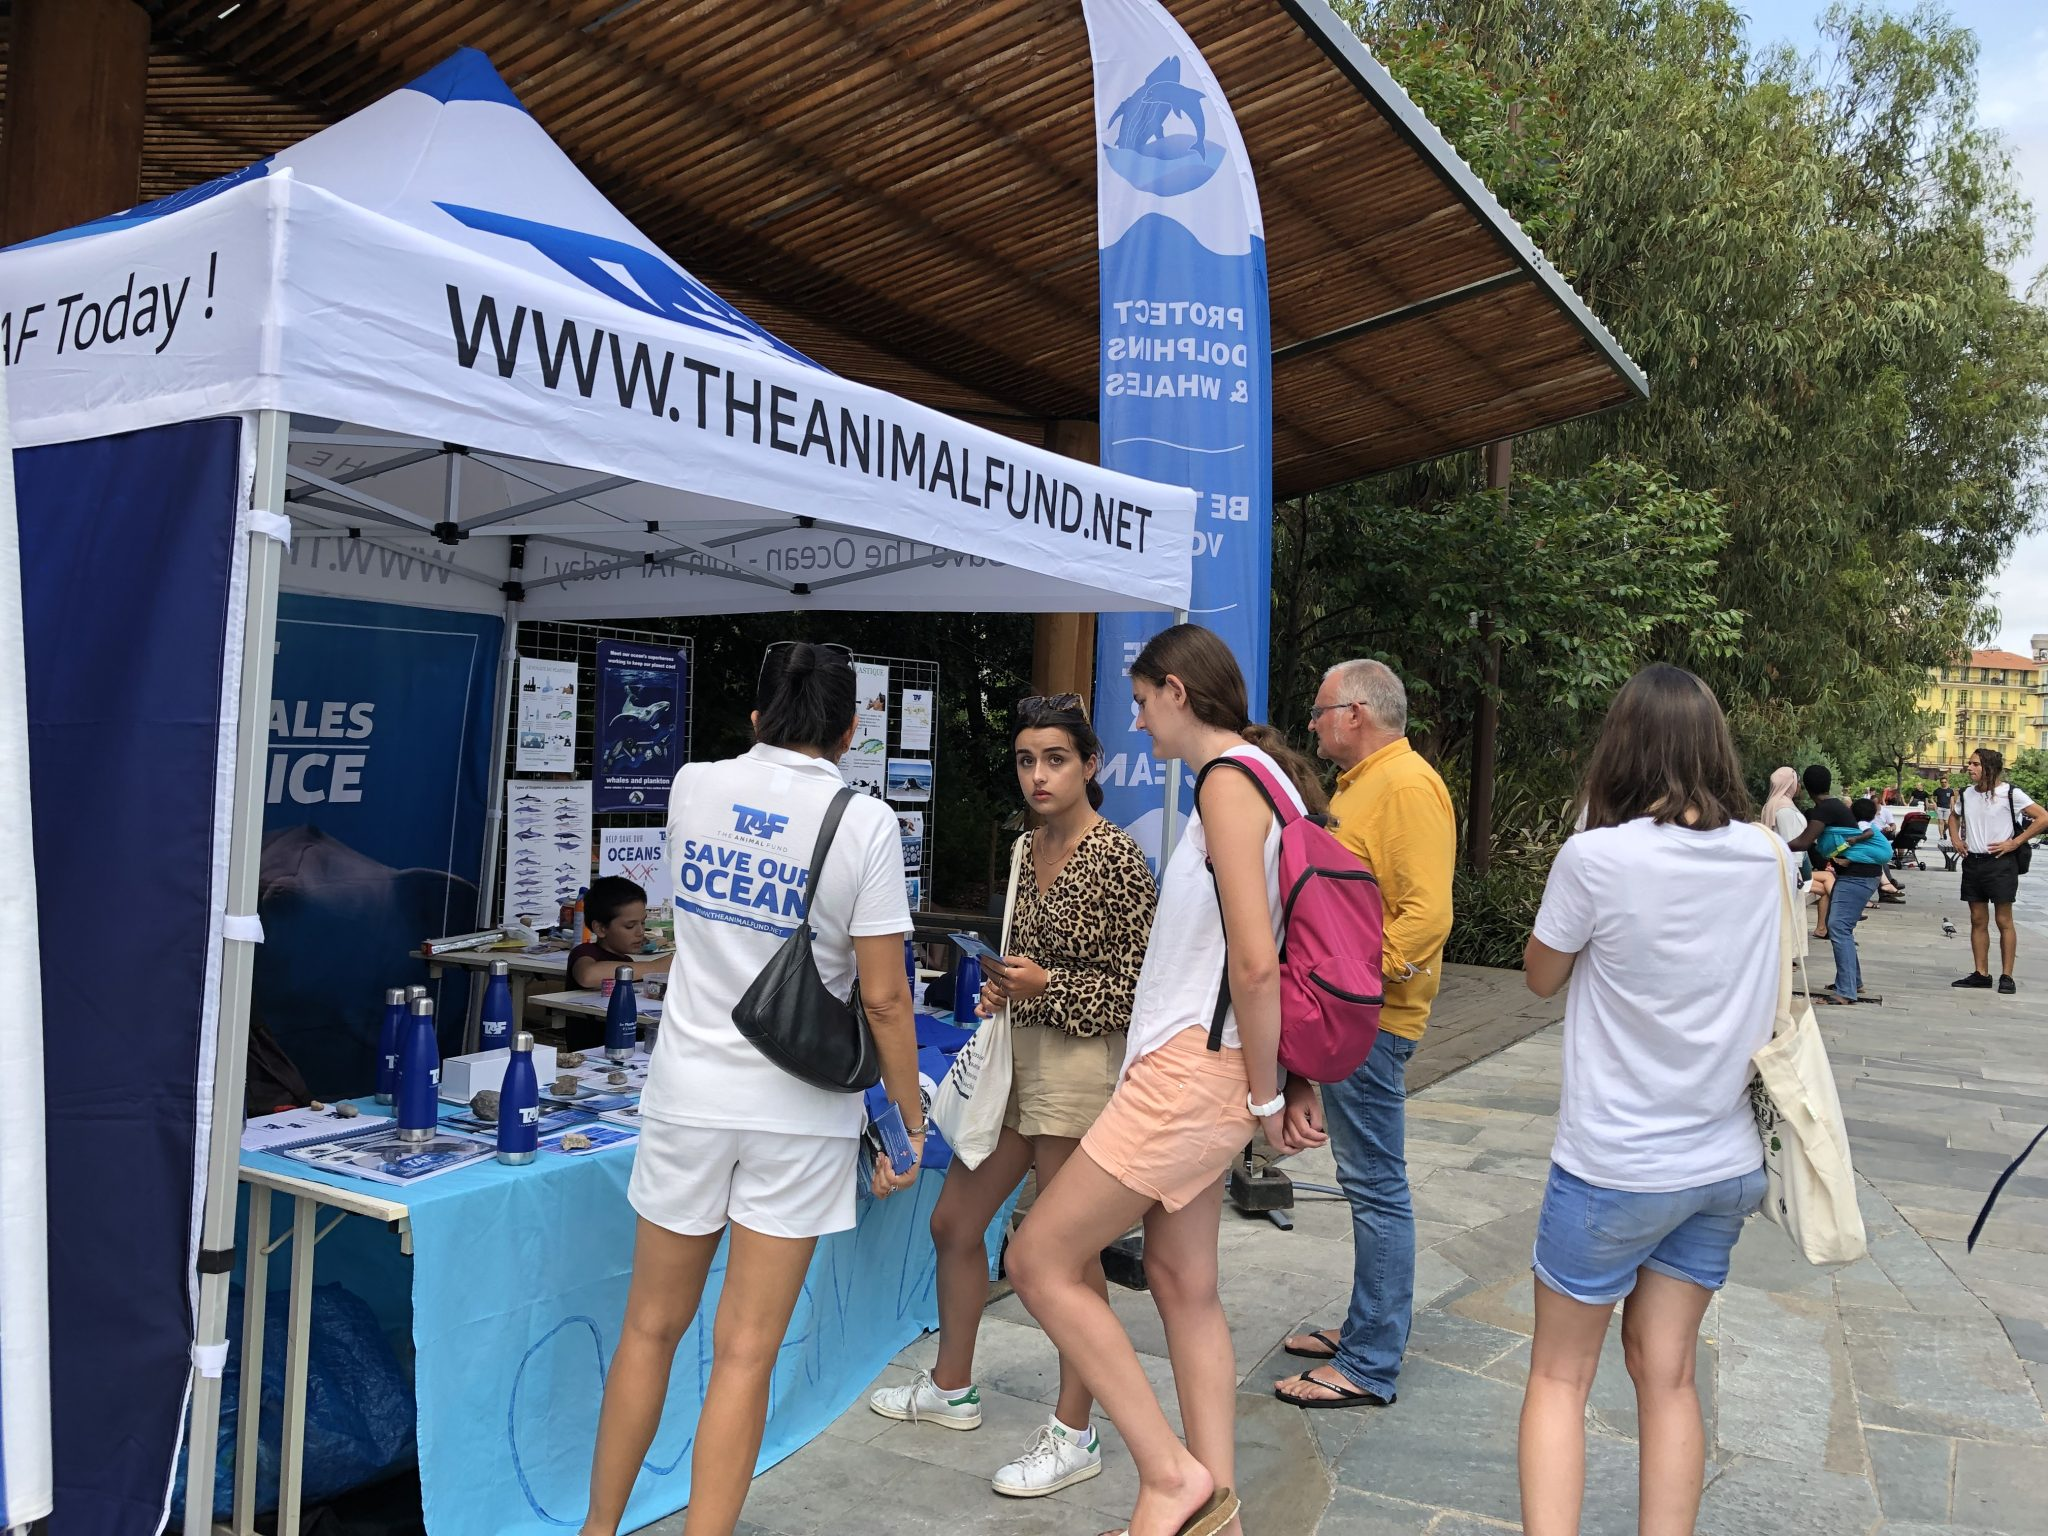 August 1st, 2019 – TAF educational stand in Nice